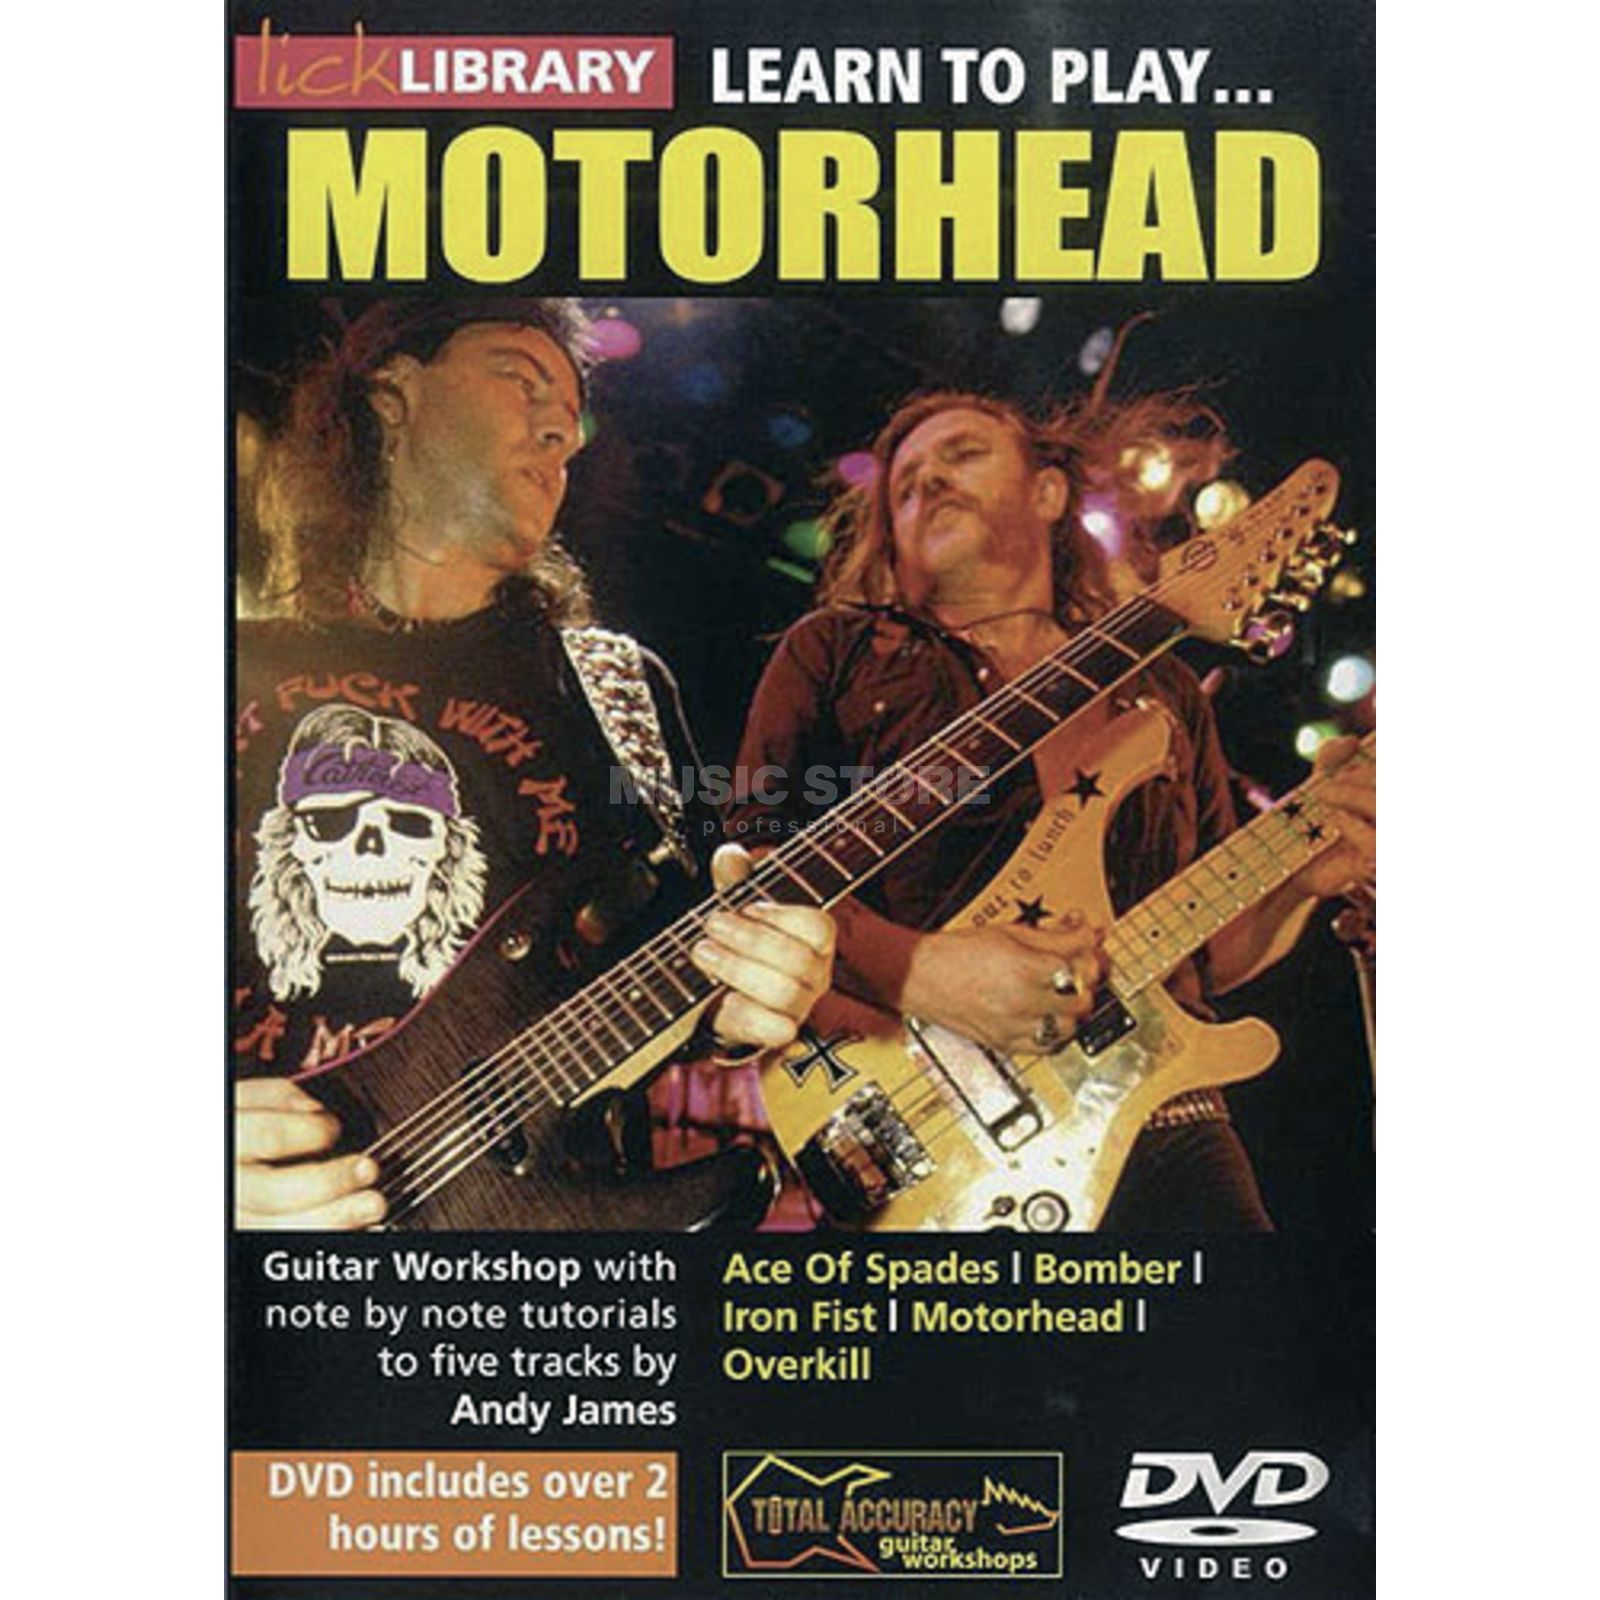 Roadrock International Lick Library: Learn To Play Motorhead DVD Produktbillede